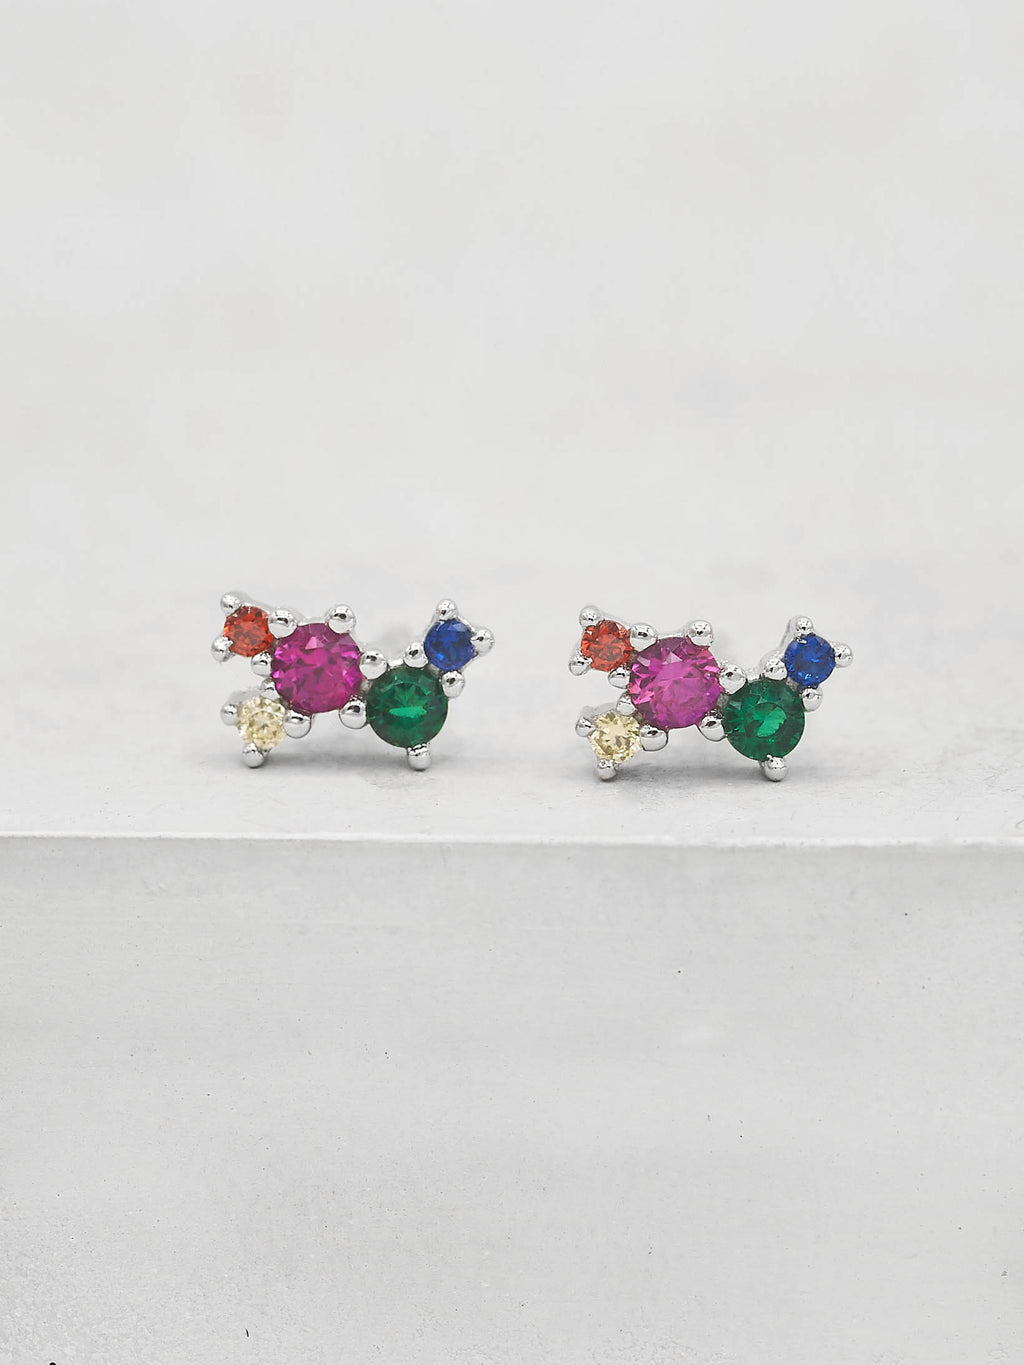 pair of Rhodium Plated Rainbow  CZ Cubic Zirconia Twilight Style Stud dainty Earrings by The Faint Hearted jewelry